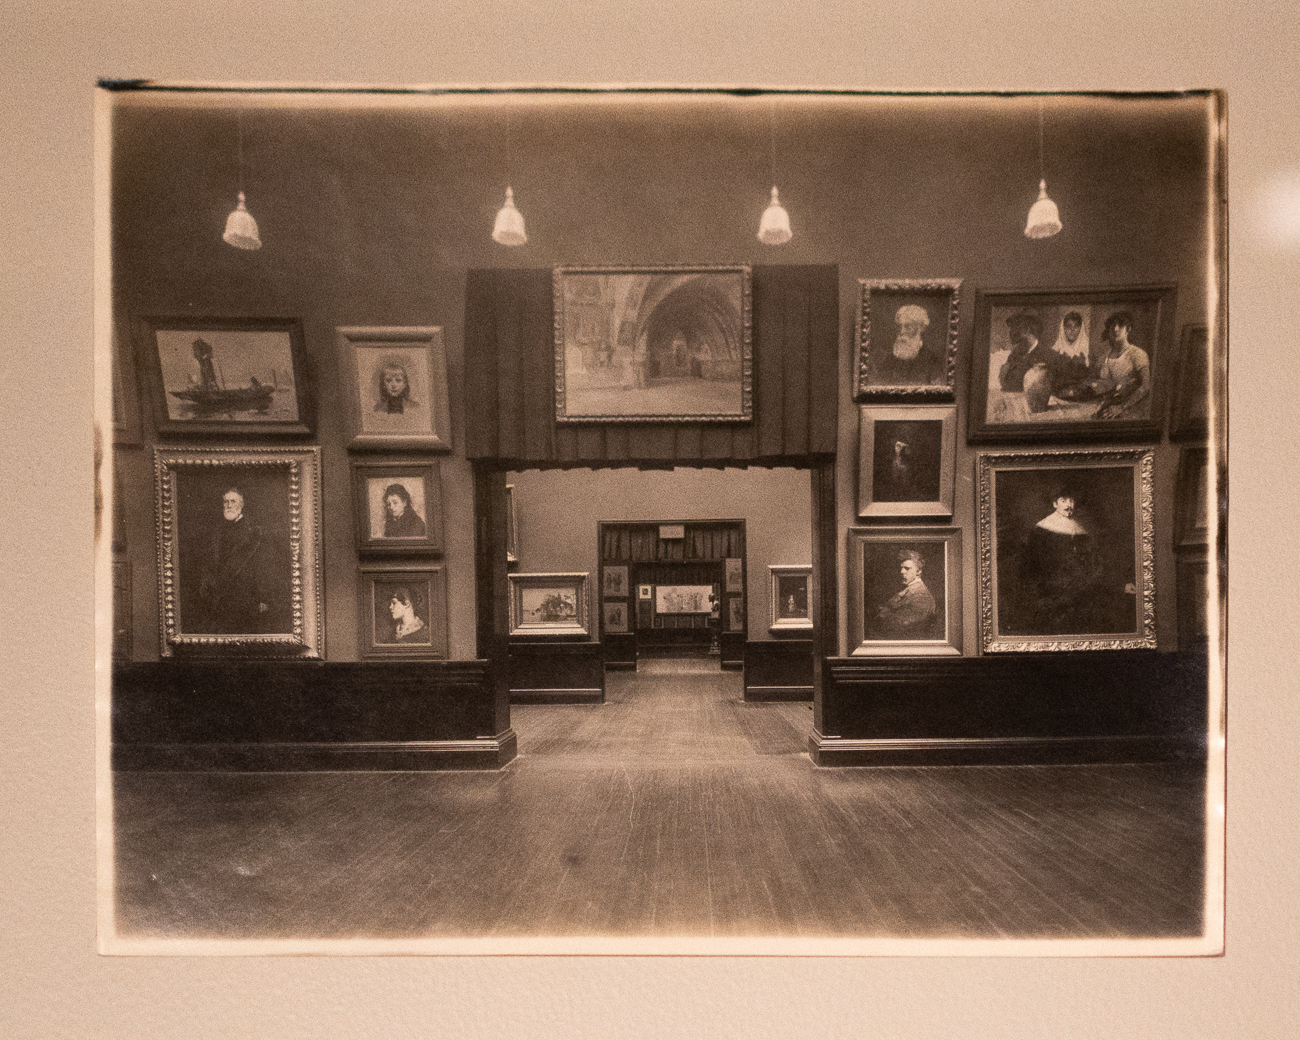 Also in the collection are rare photographs of Duveneck and those in his life. This photo shows the Cincinnati Art Museum hung with Duveneck works salon-style. / Image: Phil Armstrong, Cincinnati Refined // Published: 12.19.20